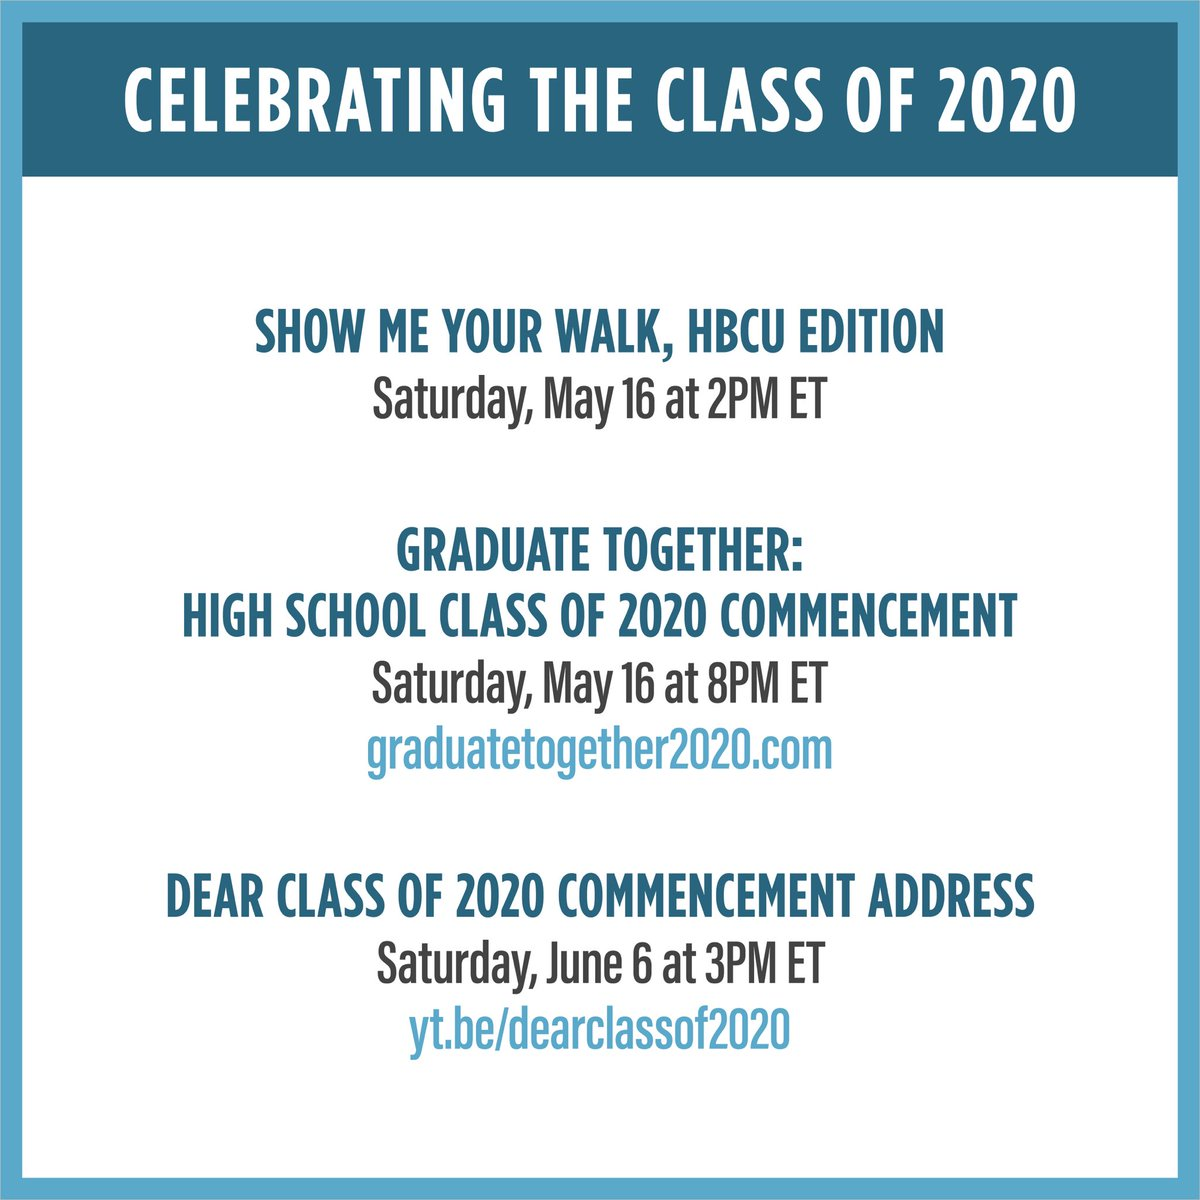 I've always loved joining commencements––the culmination of years of hard work and sacrifice. Even if we can't get together in person this year, Michelle and I are excited to celebrate the nationwide Class of 2020 and recognize this milestone with you and your loved ones. https://t.co/ngR2ykx3A2